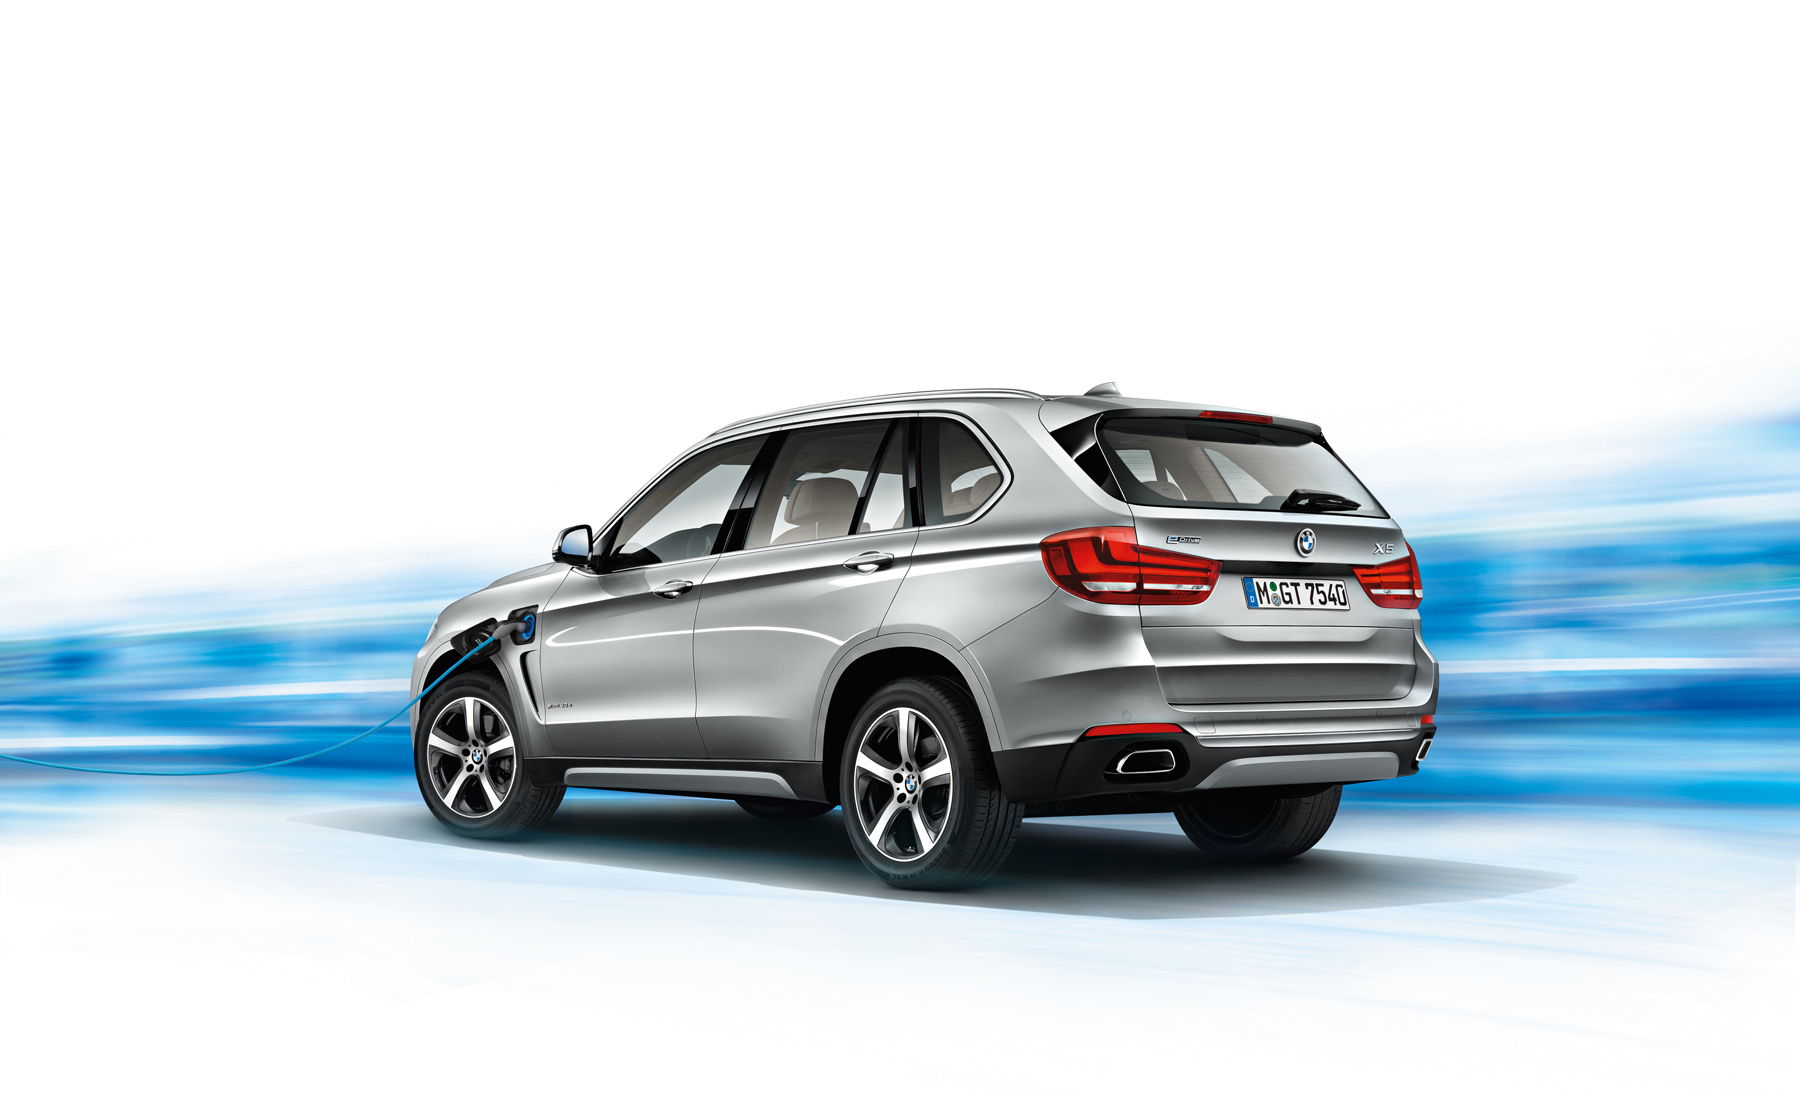 bmw x5 xdrive40e 2016 cartype. Black Bedroom Furniture Sets. Home Design Ideas